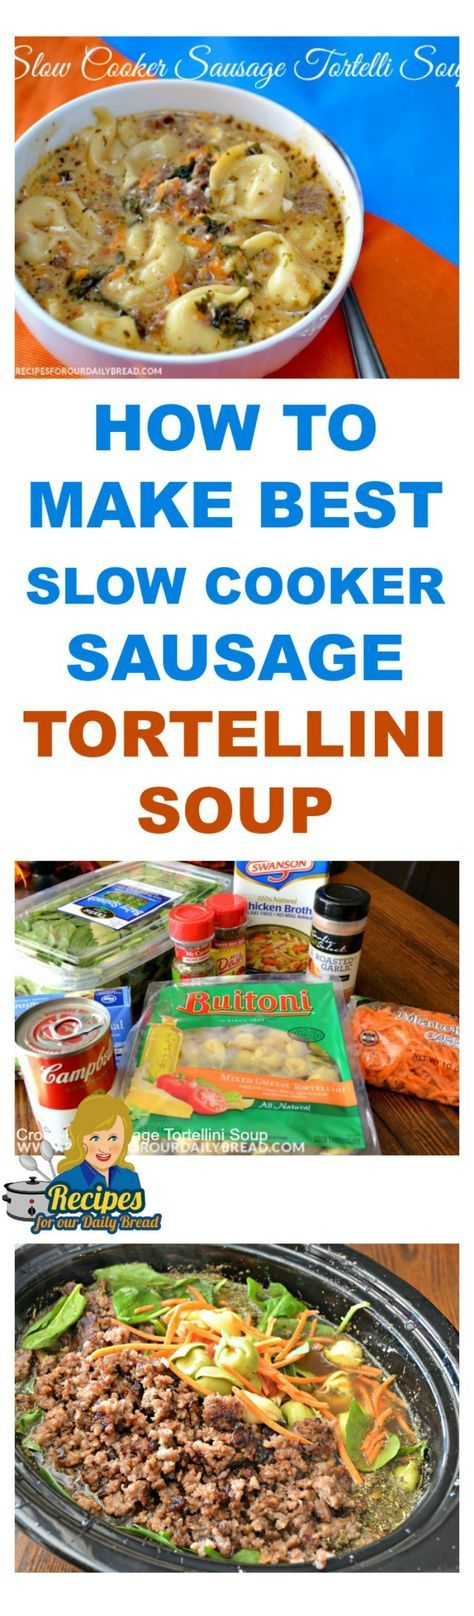 HOW TO MAKE BEST SLOW COOKER SAUSAGE TORTELLINI SOUP